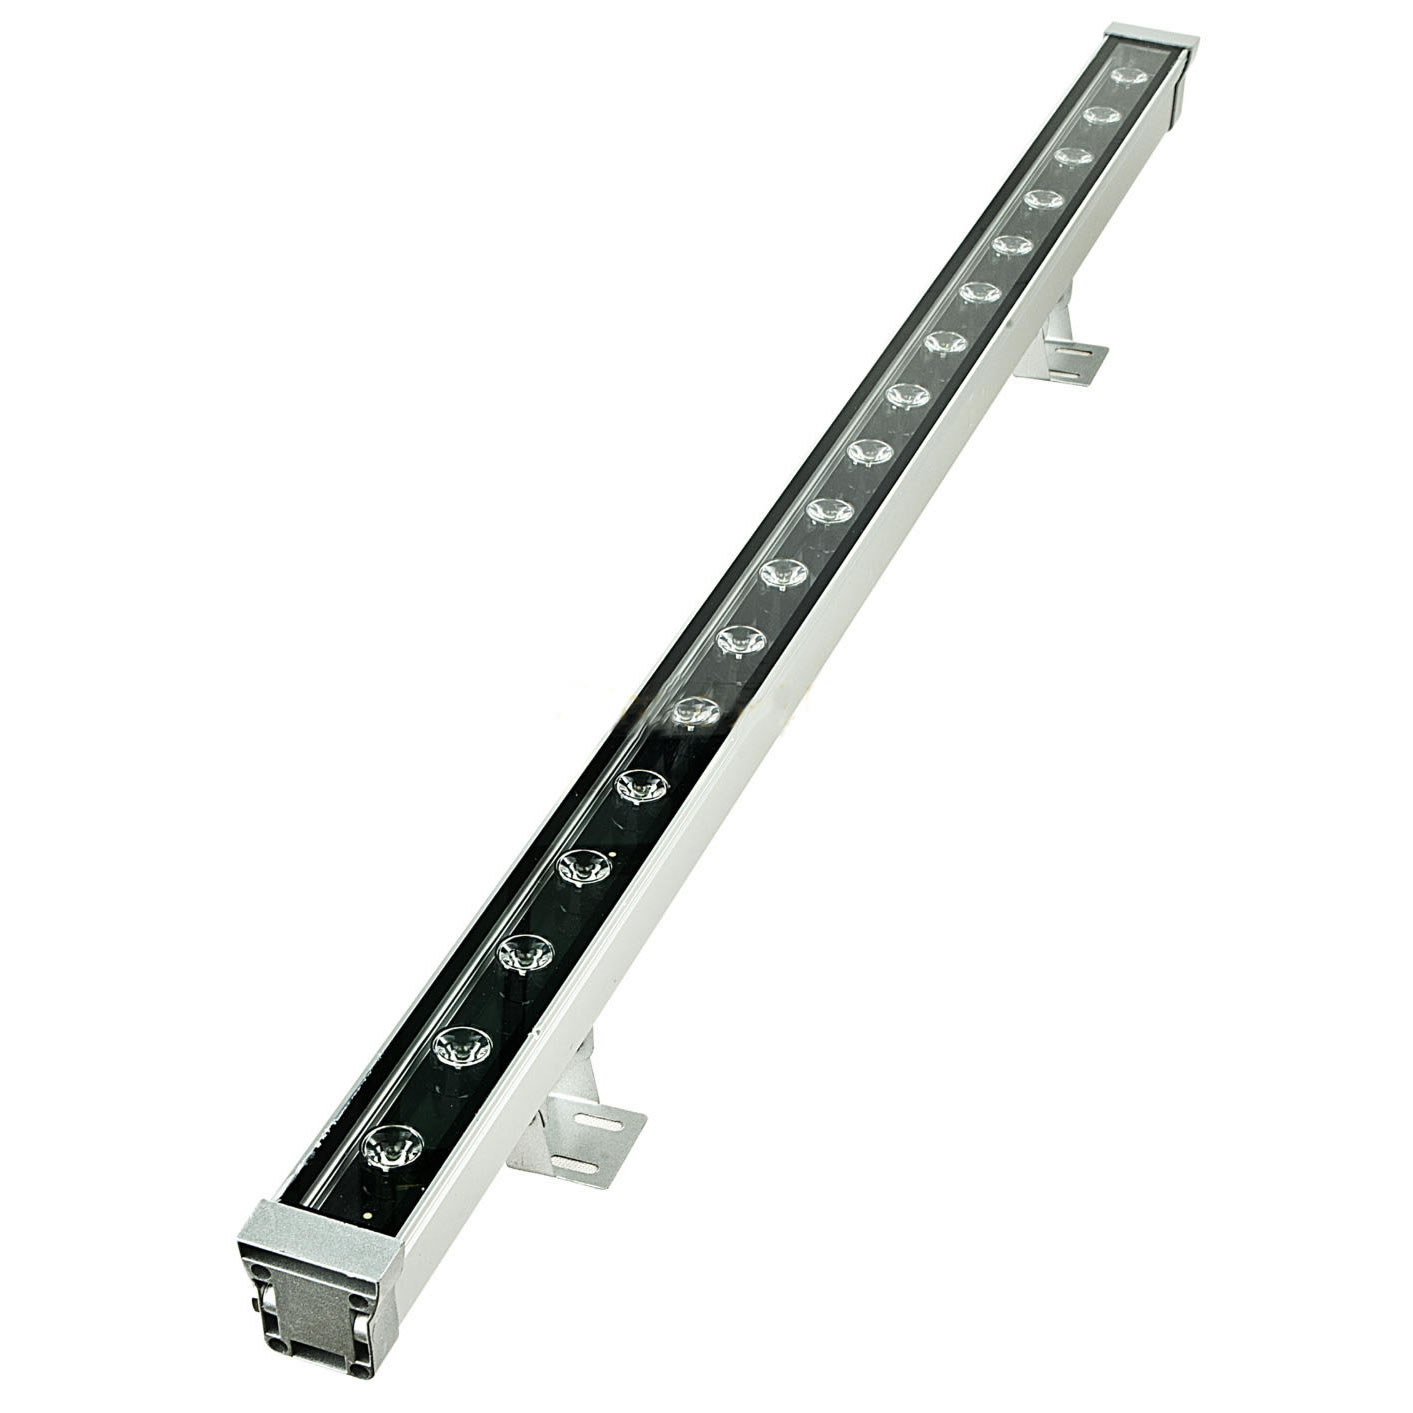 LED WALLWASHER 18W 1M